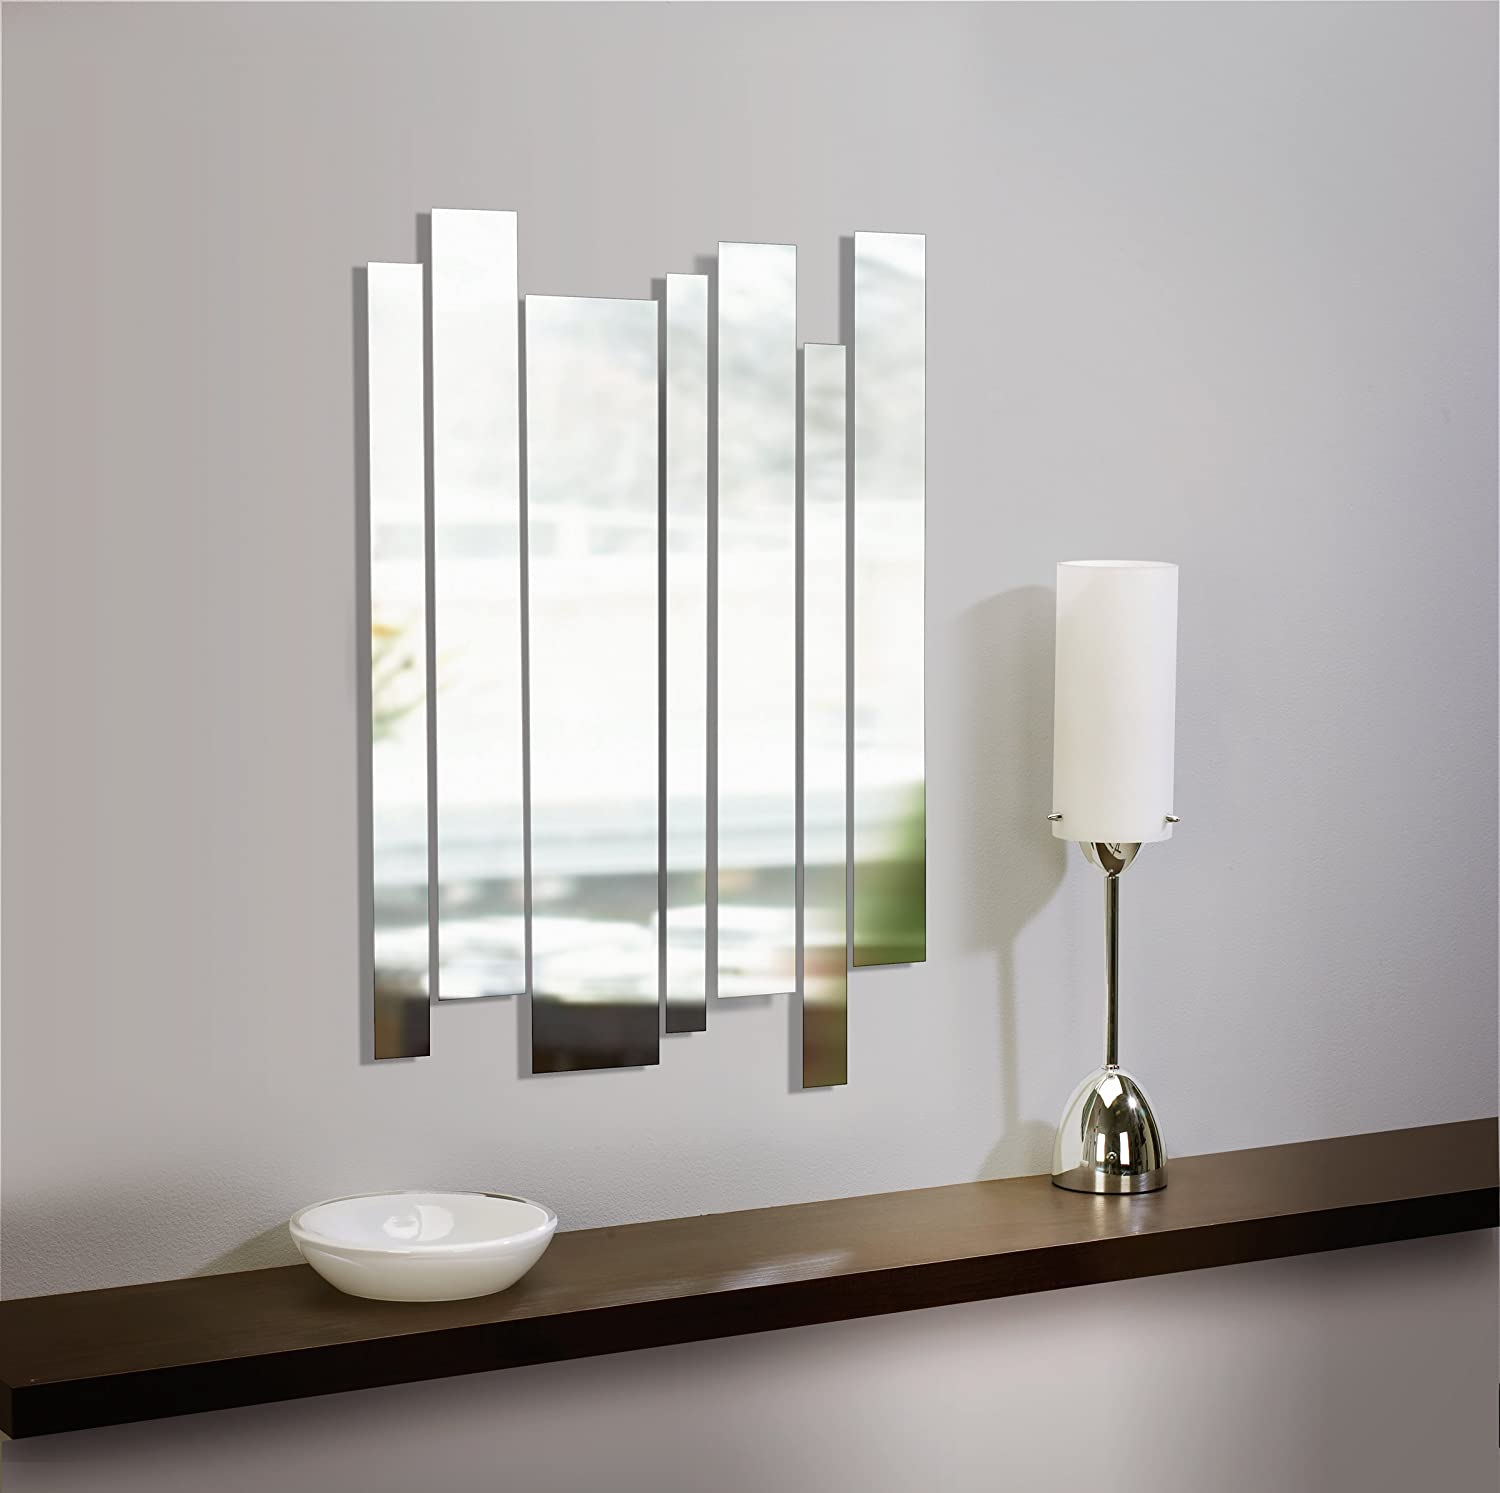 Umbra strip wall mount mirrors set of 7 new free - Wall mirror modern design ...